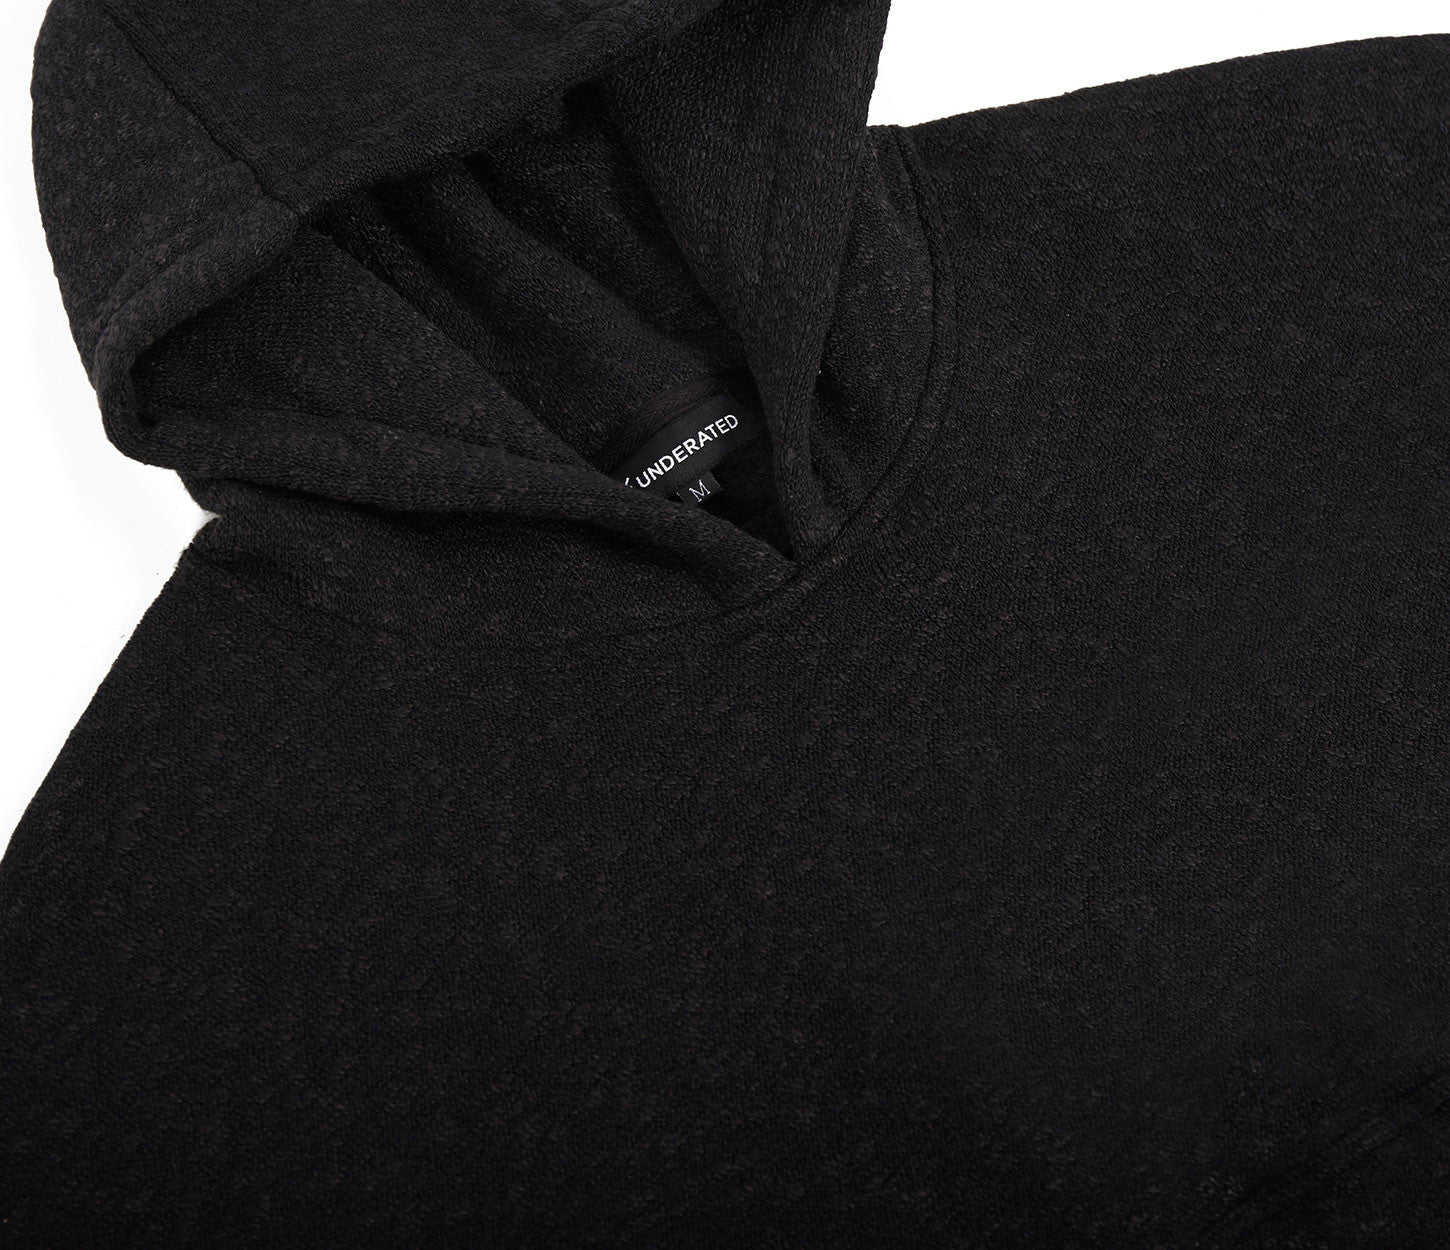 HD378 Oversized Knit Hoody - Charcoal/Black - underated london - underatedco - 6